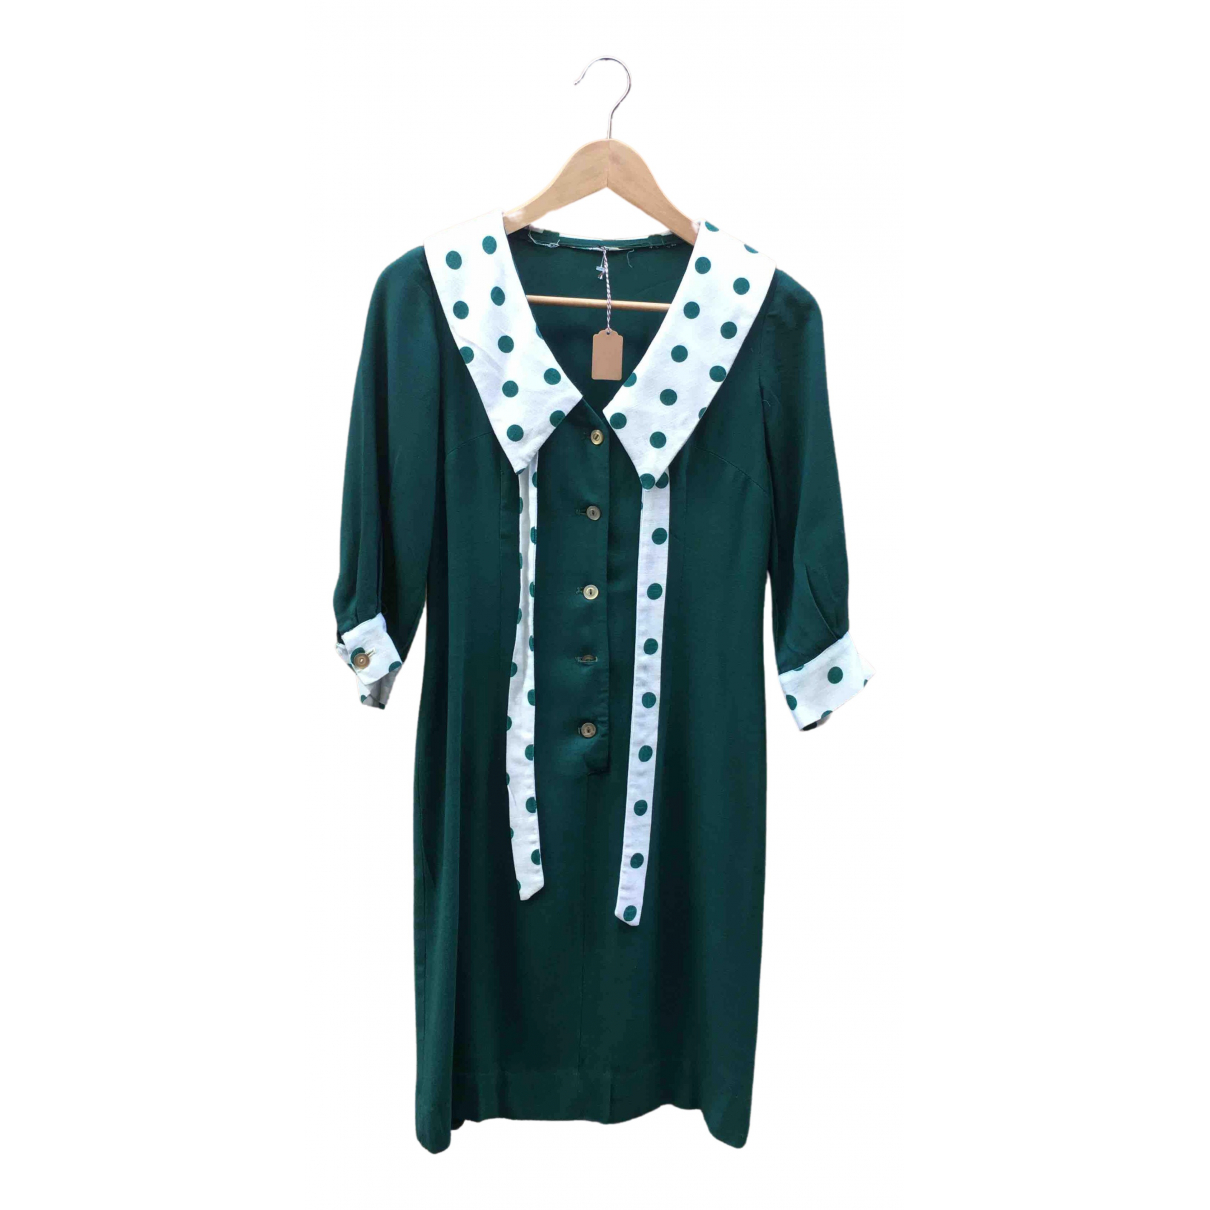 Non Signé / Unsigned Hippie Chic Green Wool dress for Women XS International